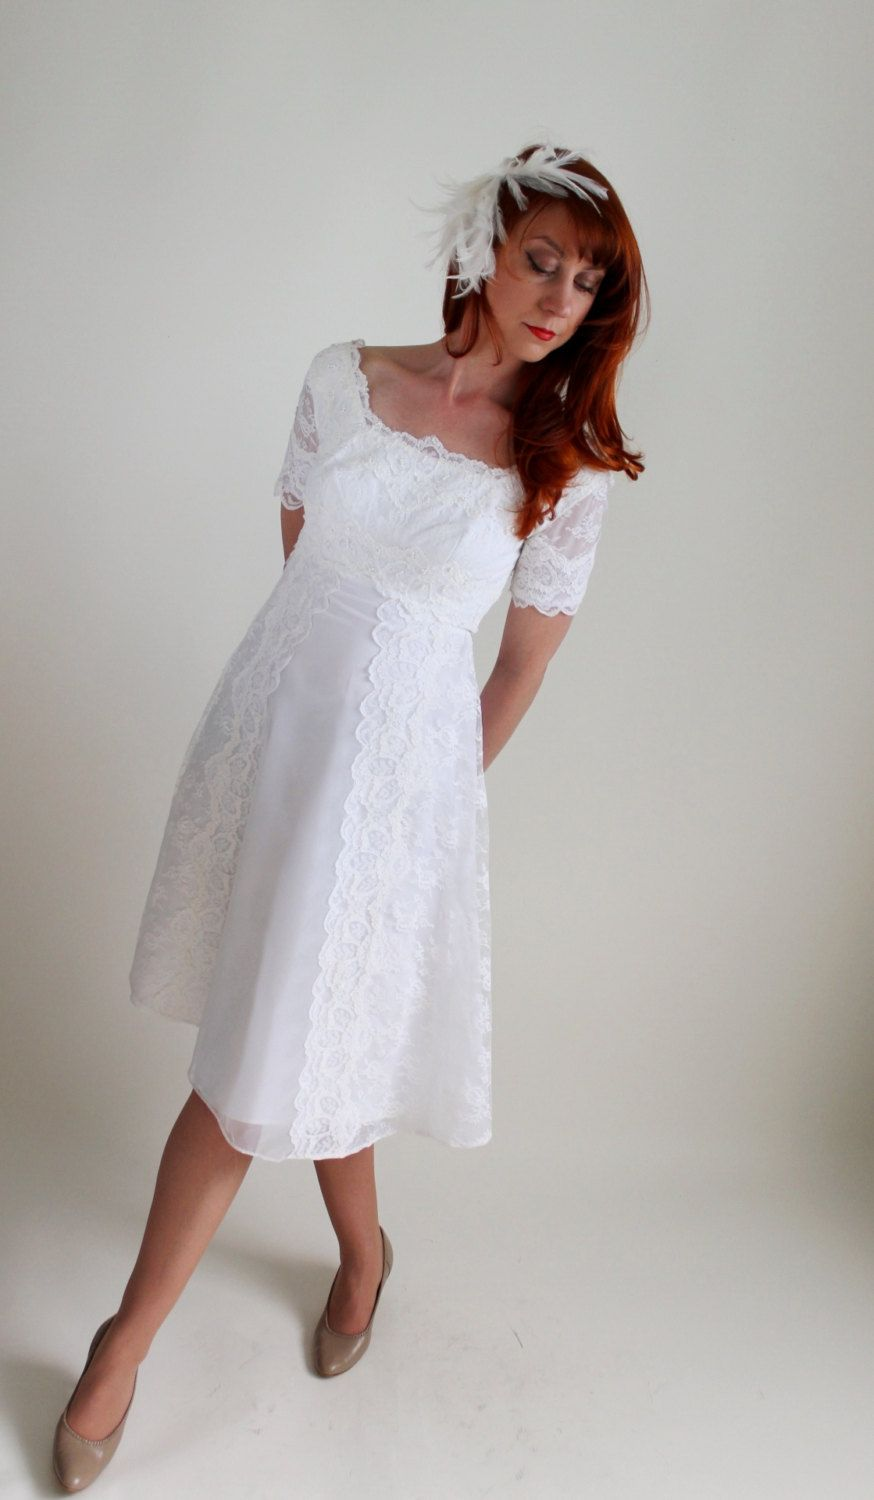 1960s White Lace Short Wedding Dress. Mad Men Fashion. Mod